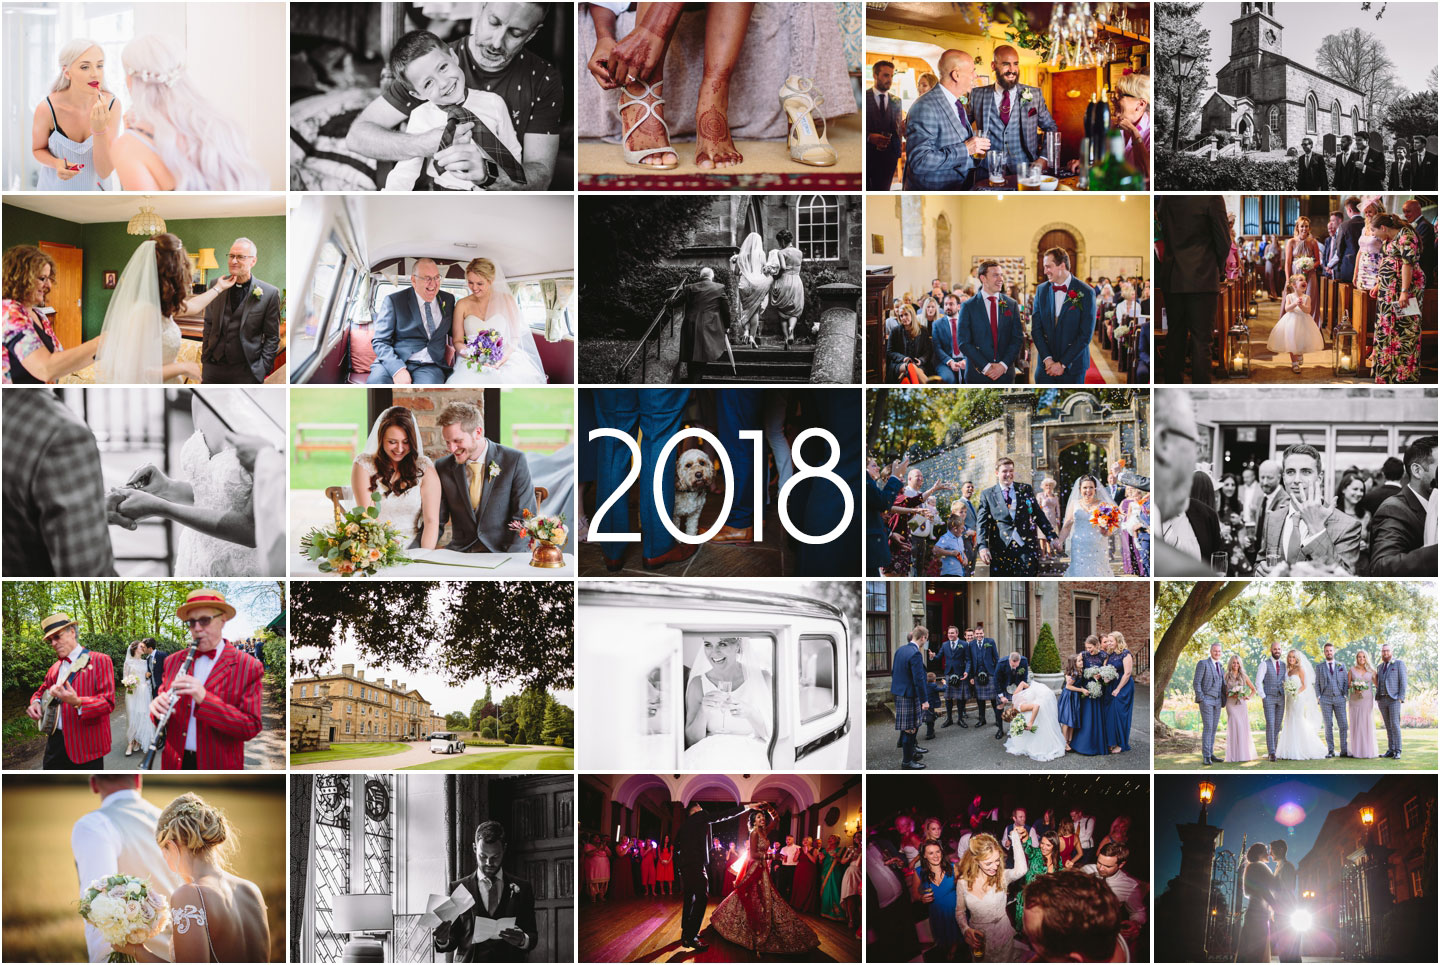 Best 2018 UK wedding photos, Amazing wedding photography highlights, Best UK wedding photographer 2018